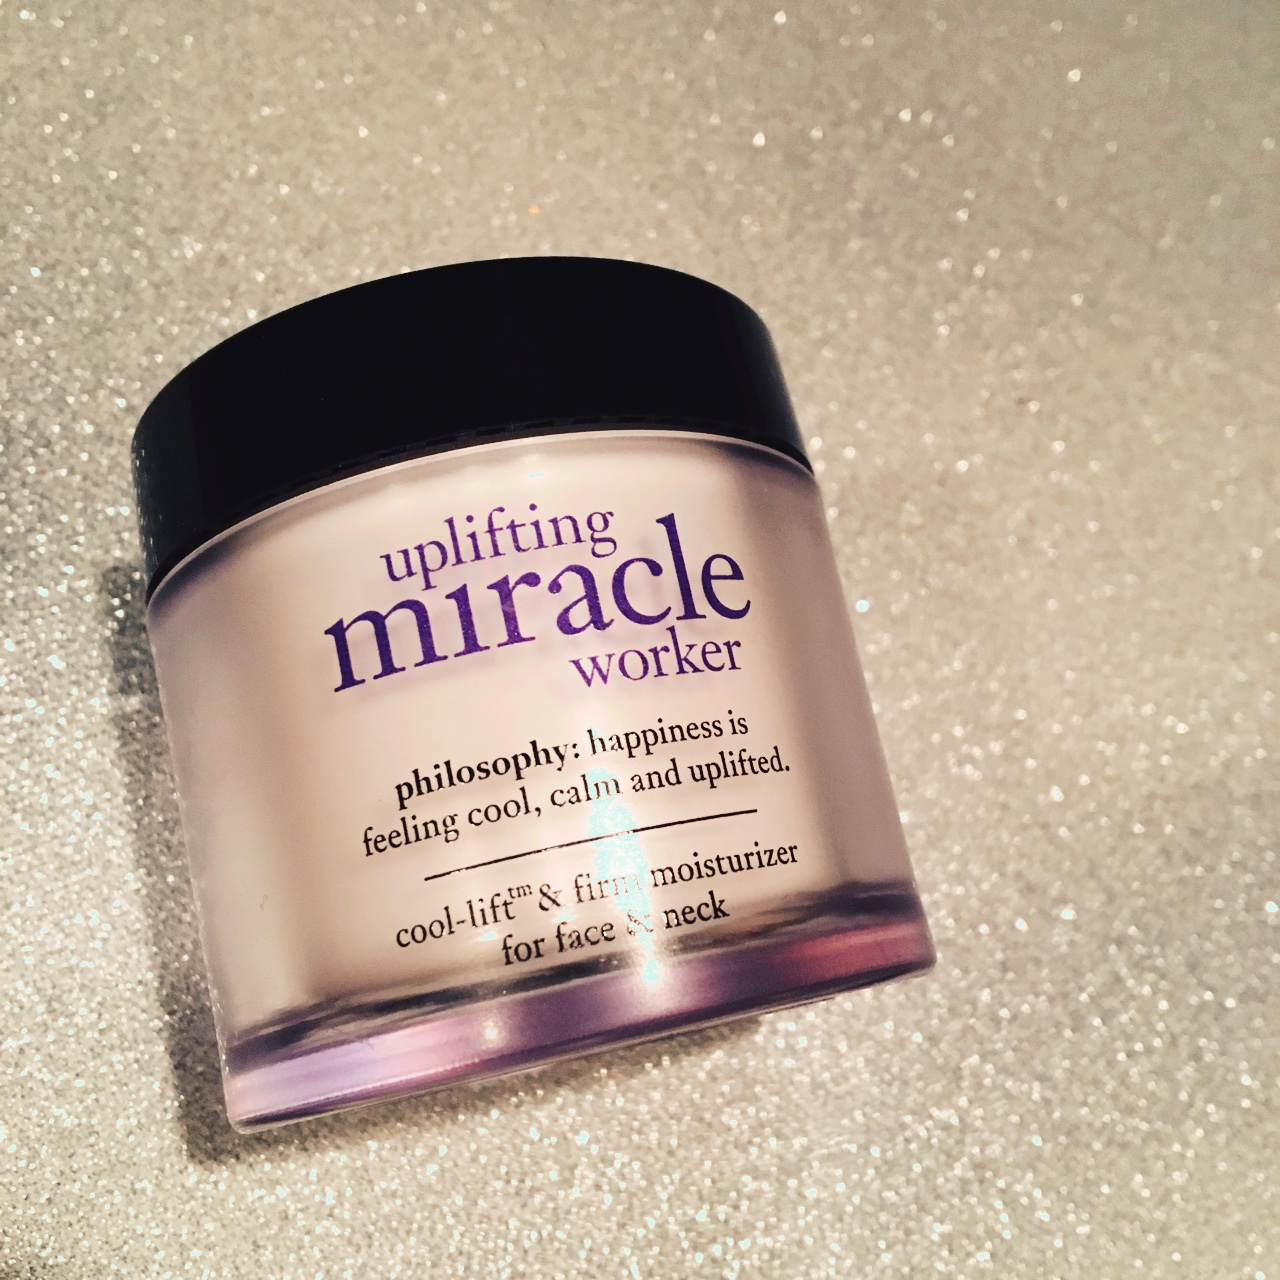 uplifting miracle worker